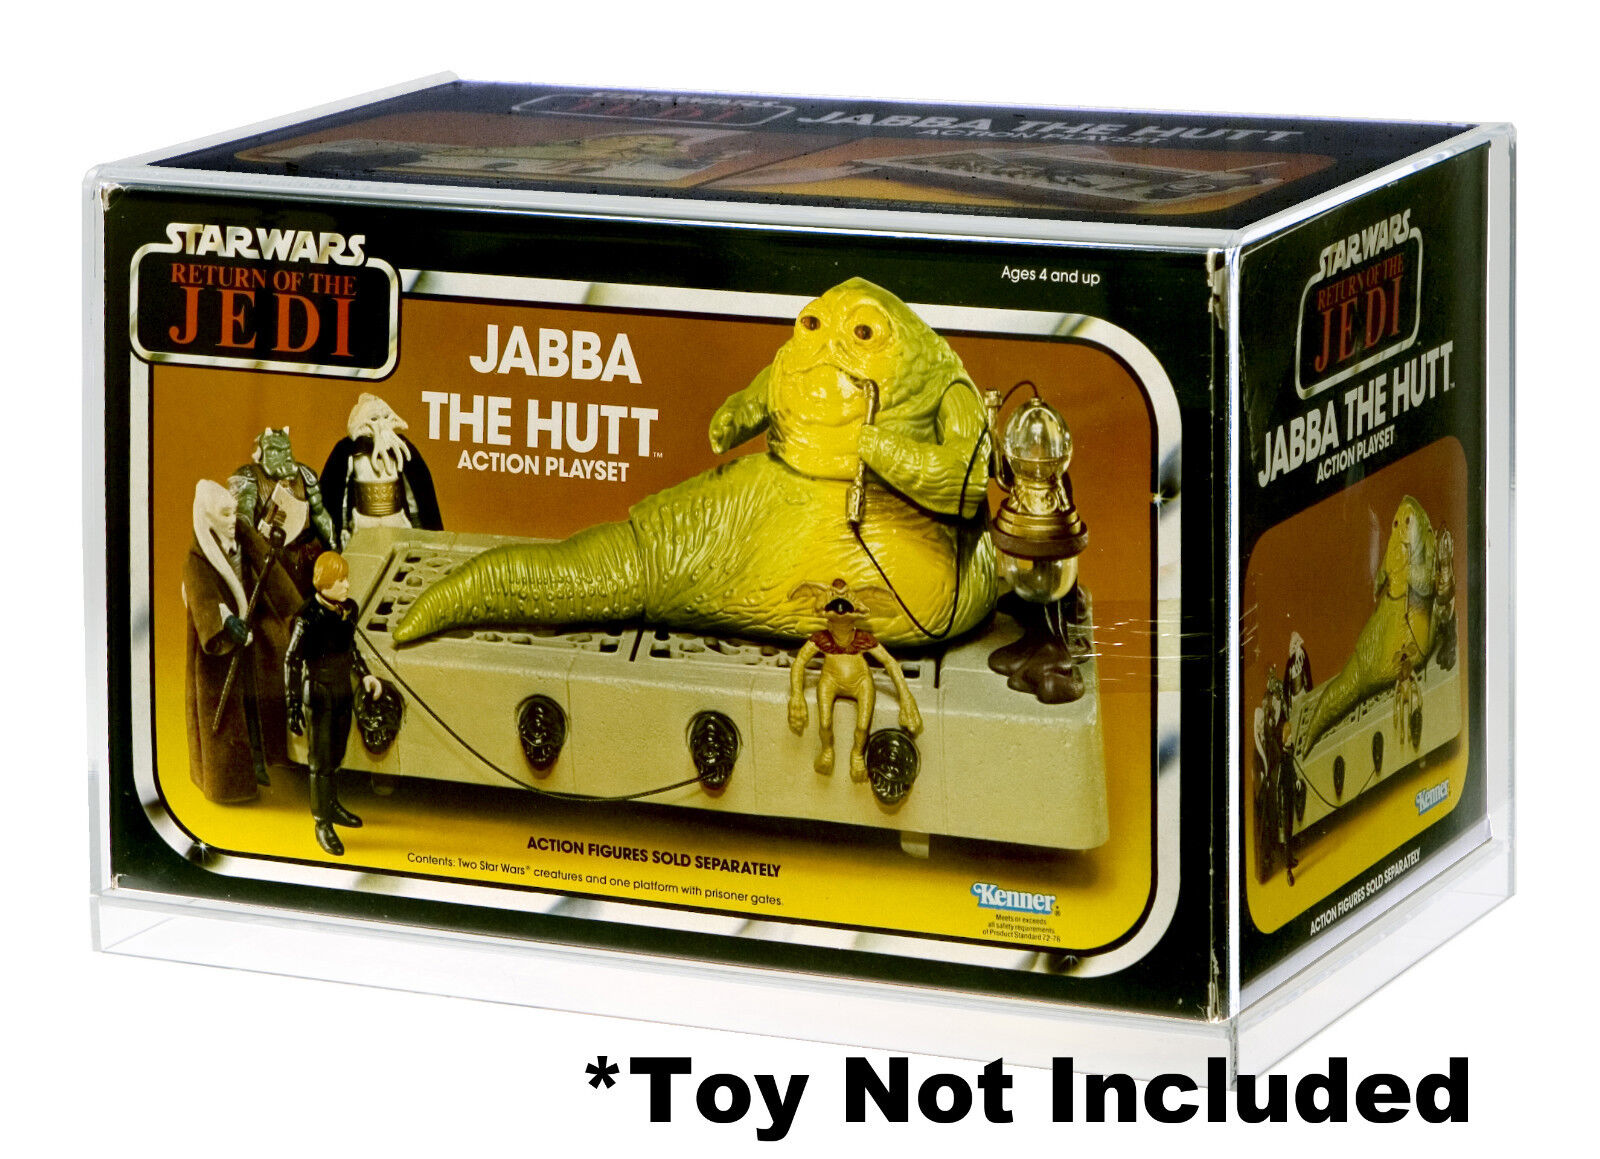 Star Wars - Jabba The Hutt Action Playset Display Case